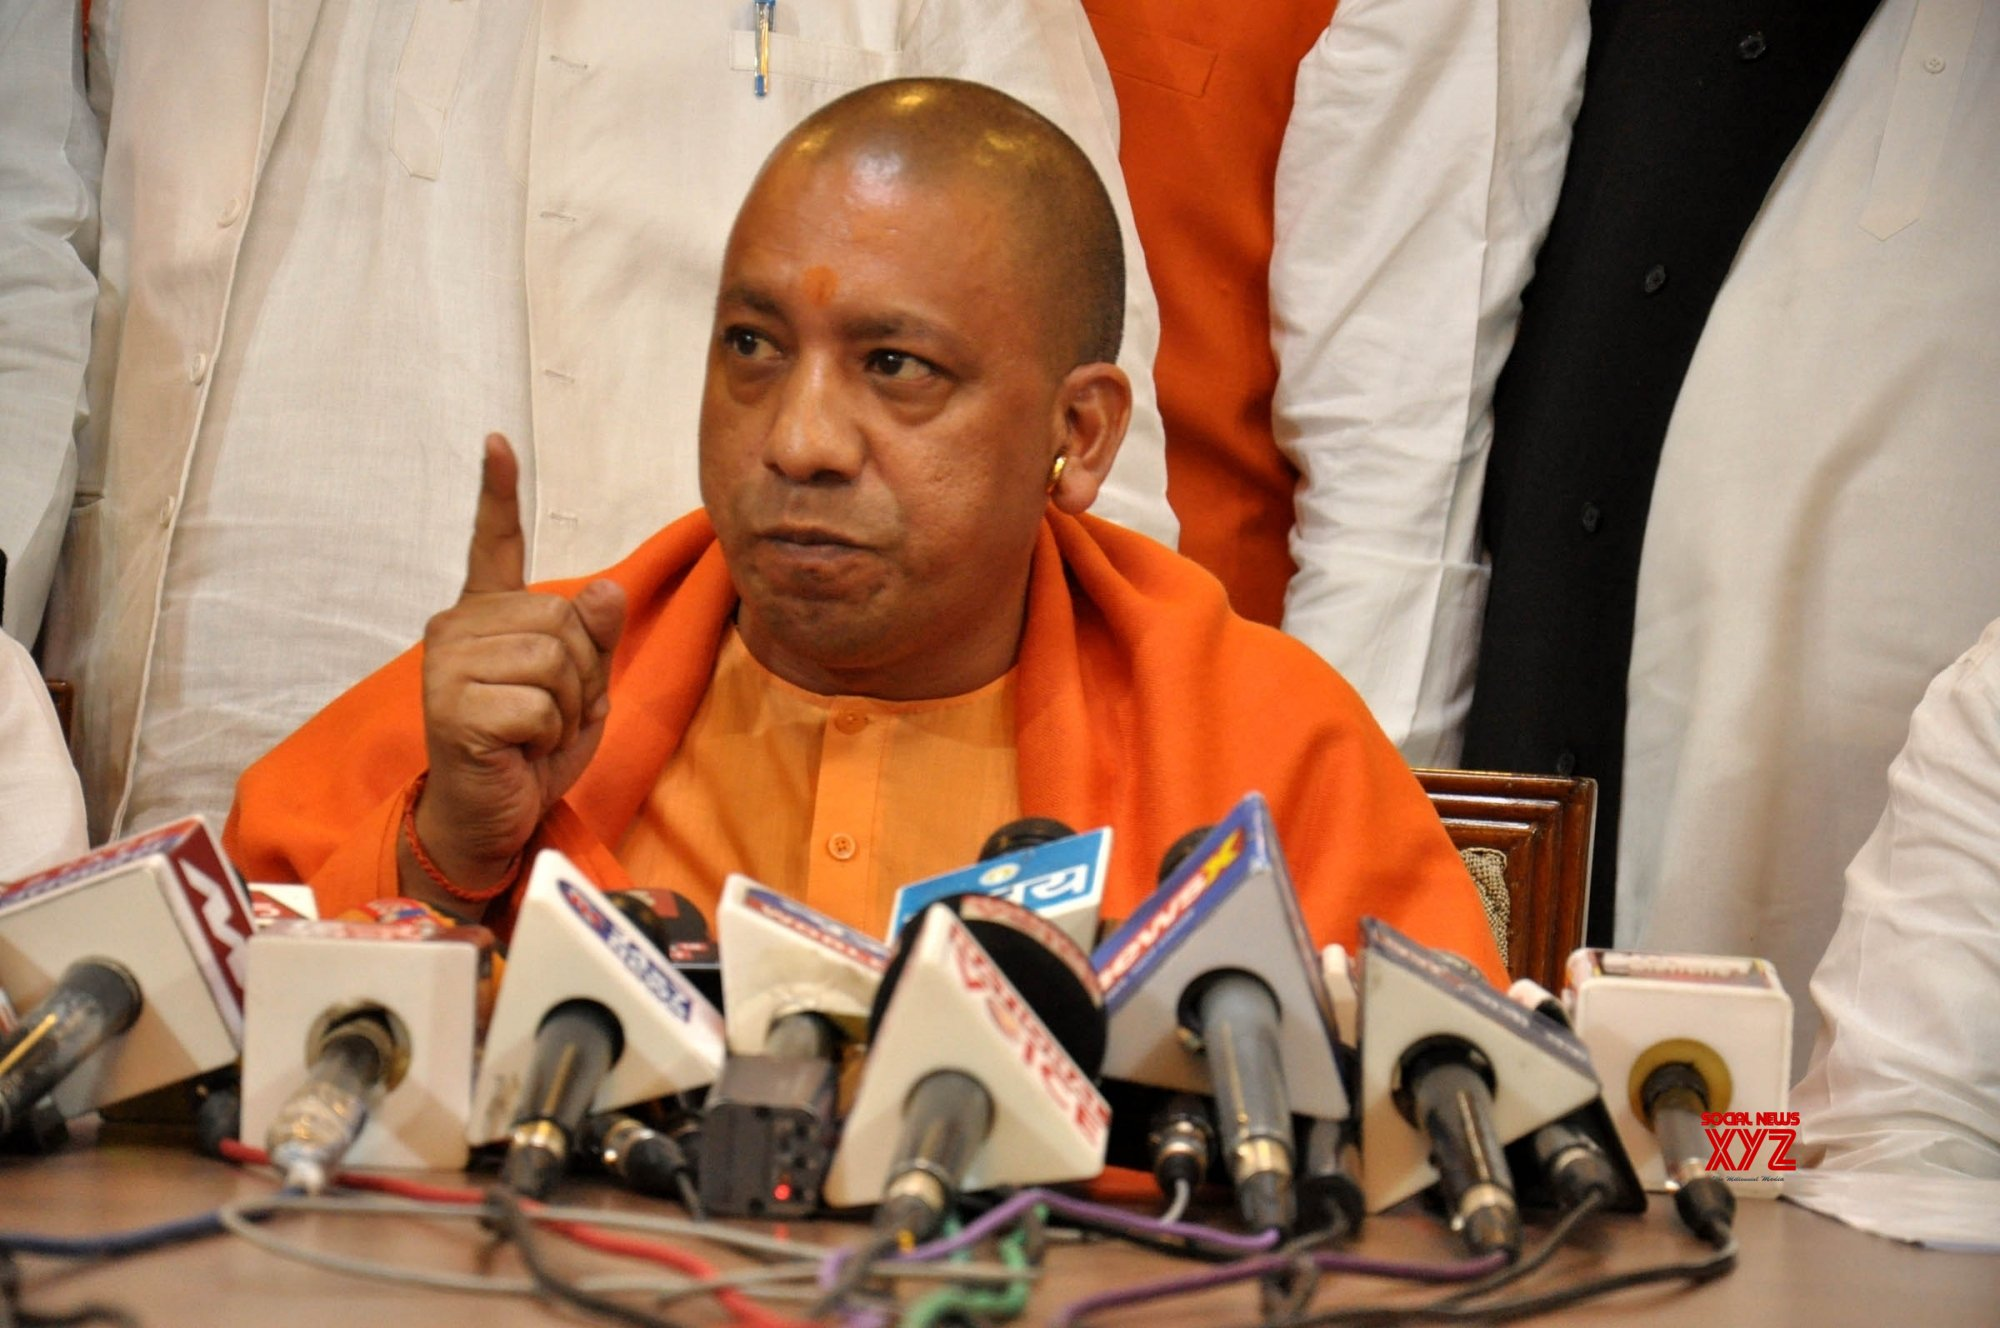 Yogi appeals for peace, all UP schools closed for 3 days